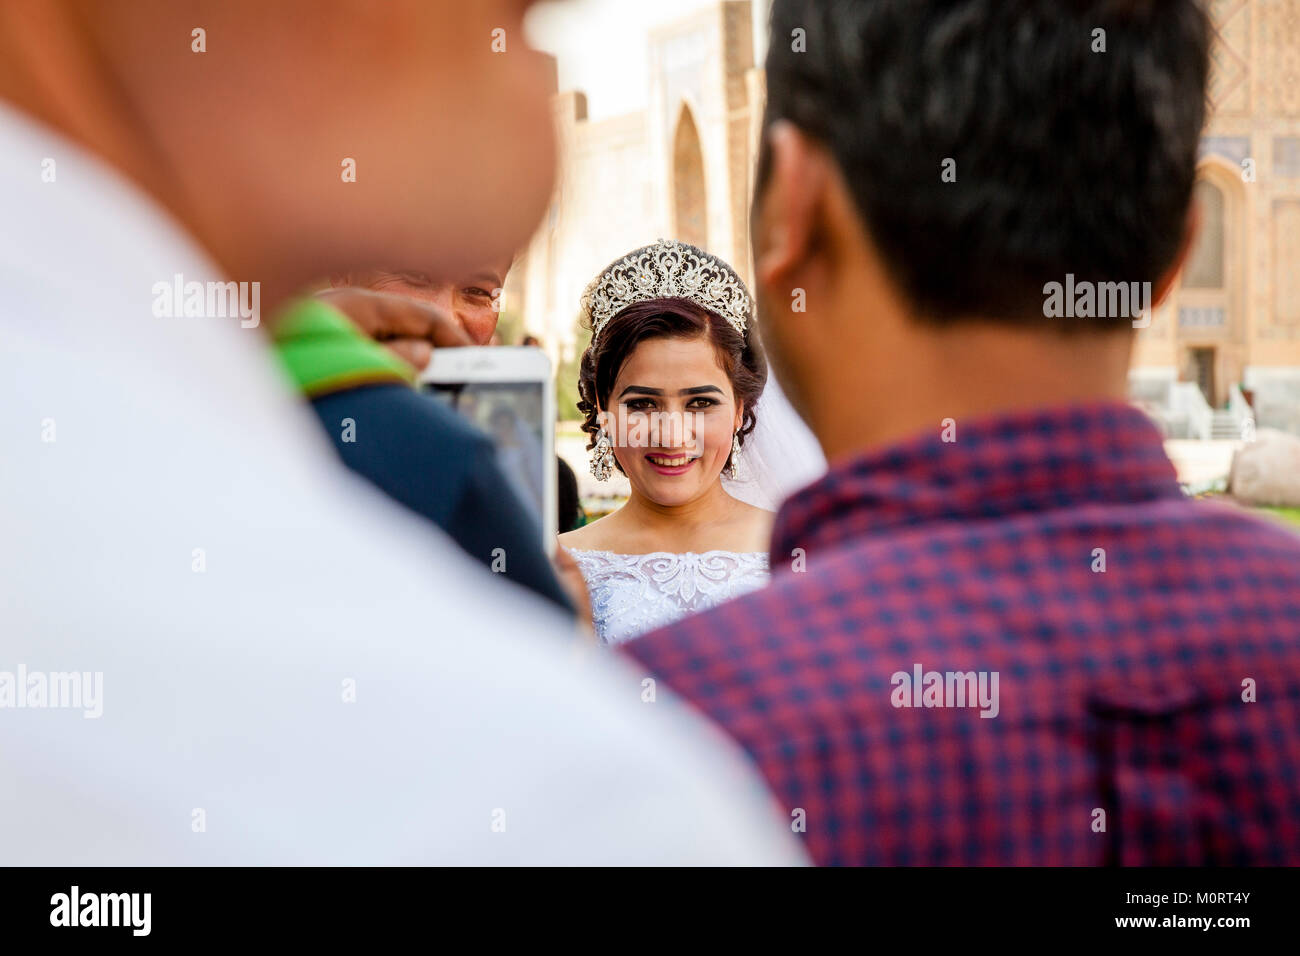 A 'Just Married' Young Couple Arrive At The Registan Complex For Their Wedding Photos, Samarkand, Uzbekistan - Stock Image